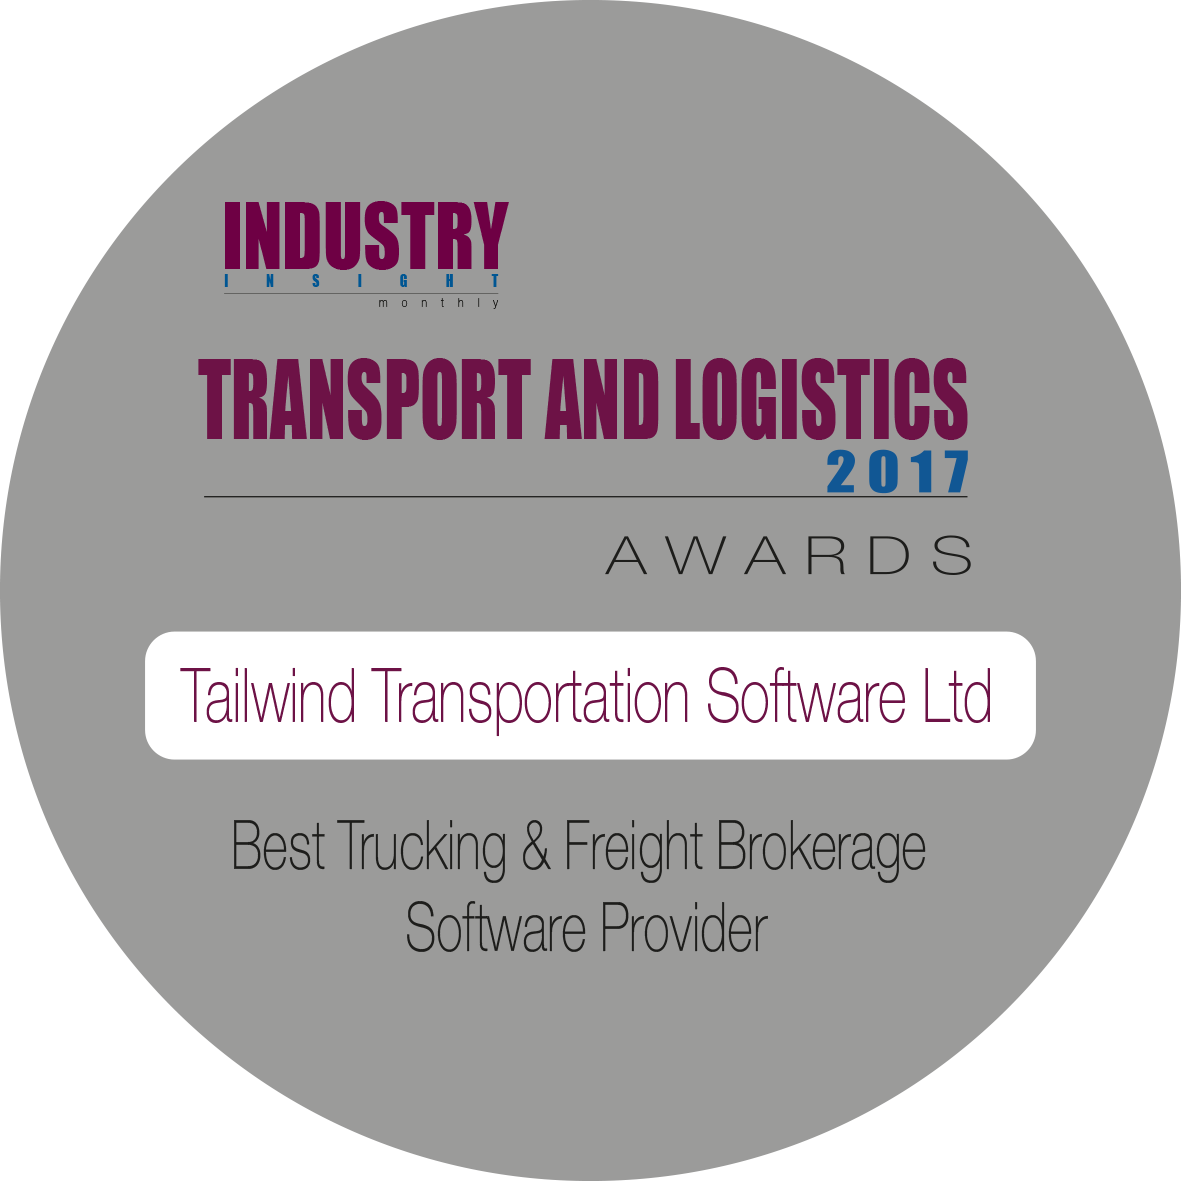 2017 Transport and Logistics Award